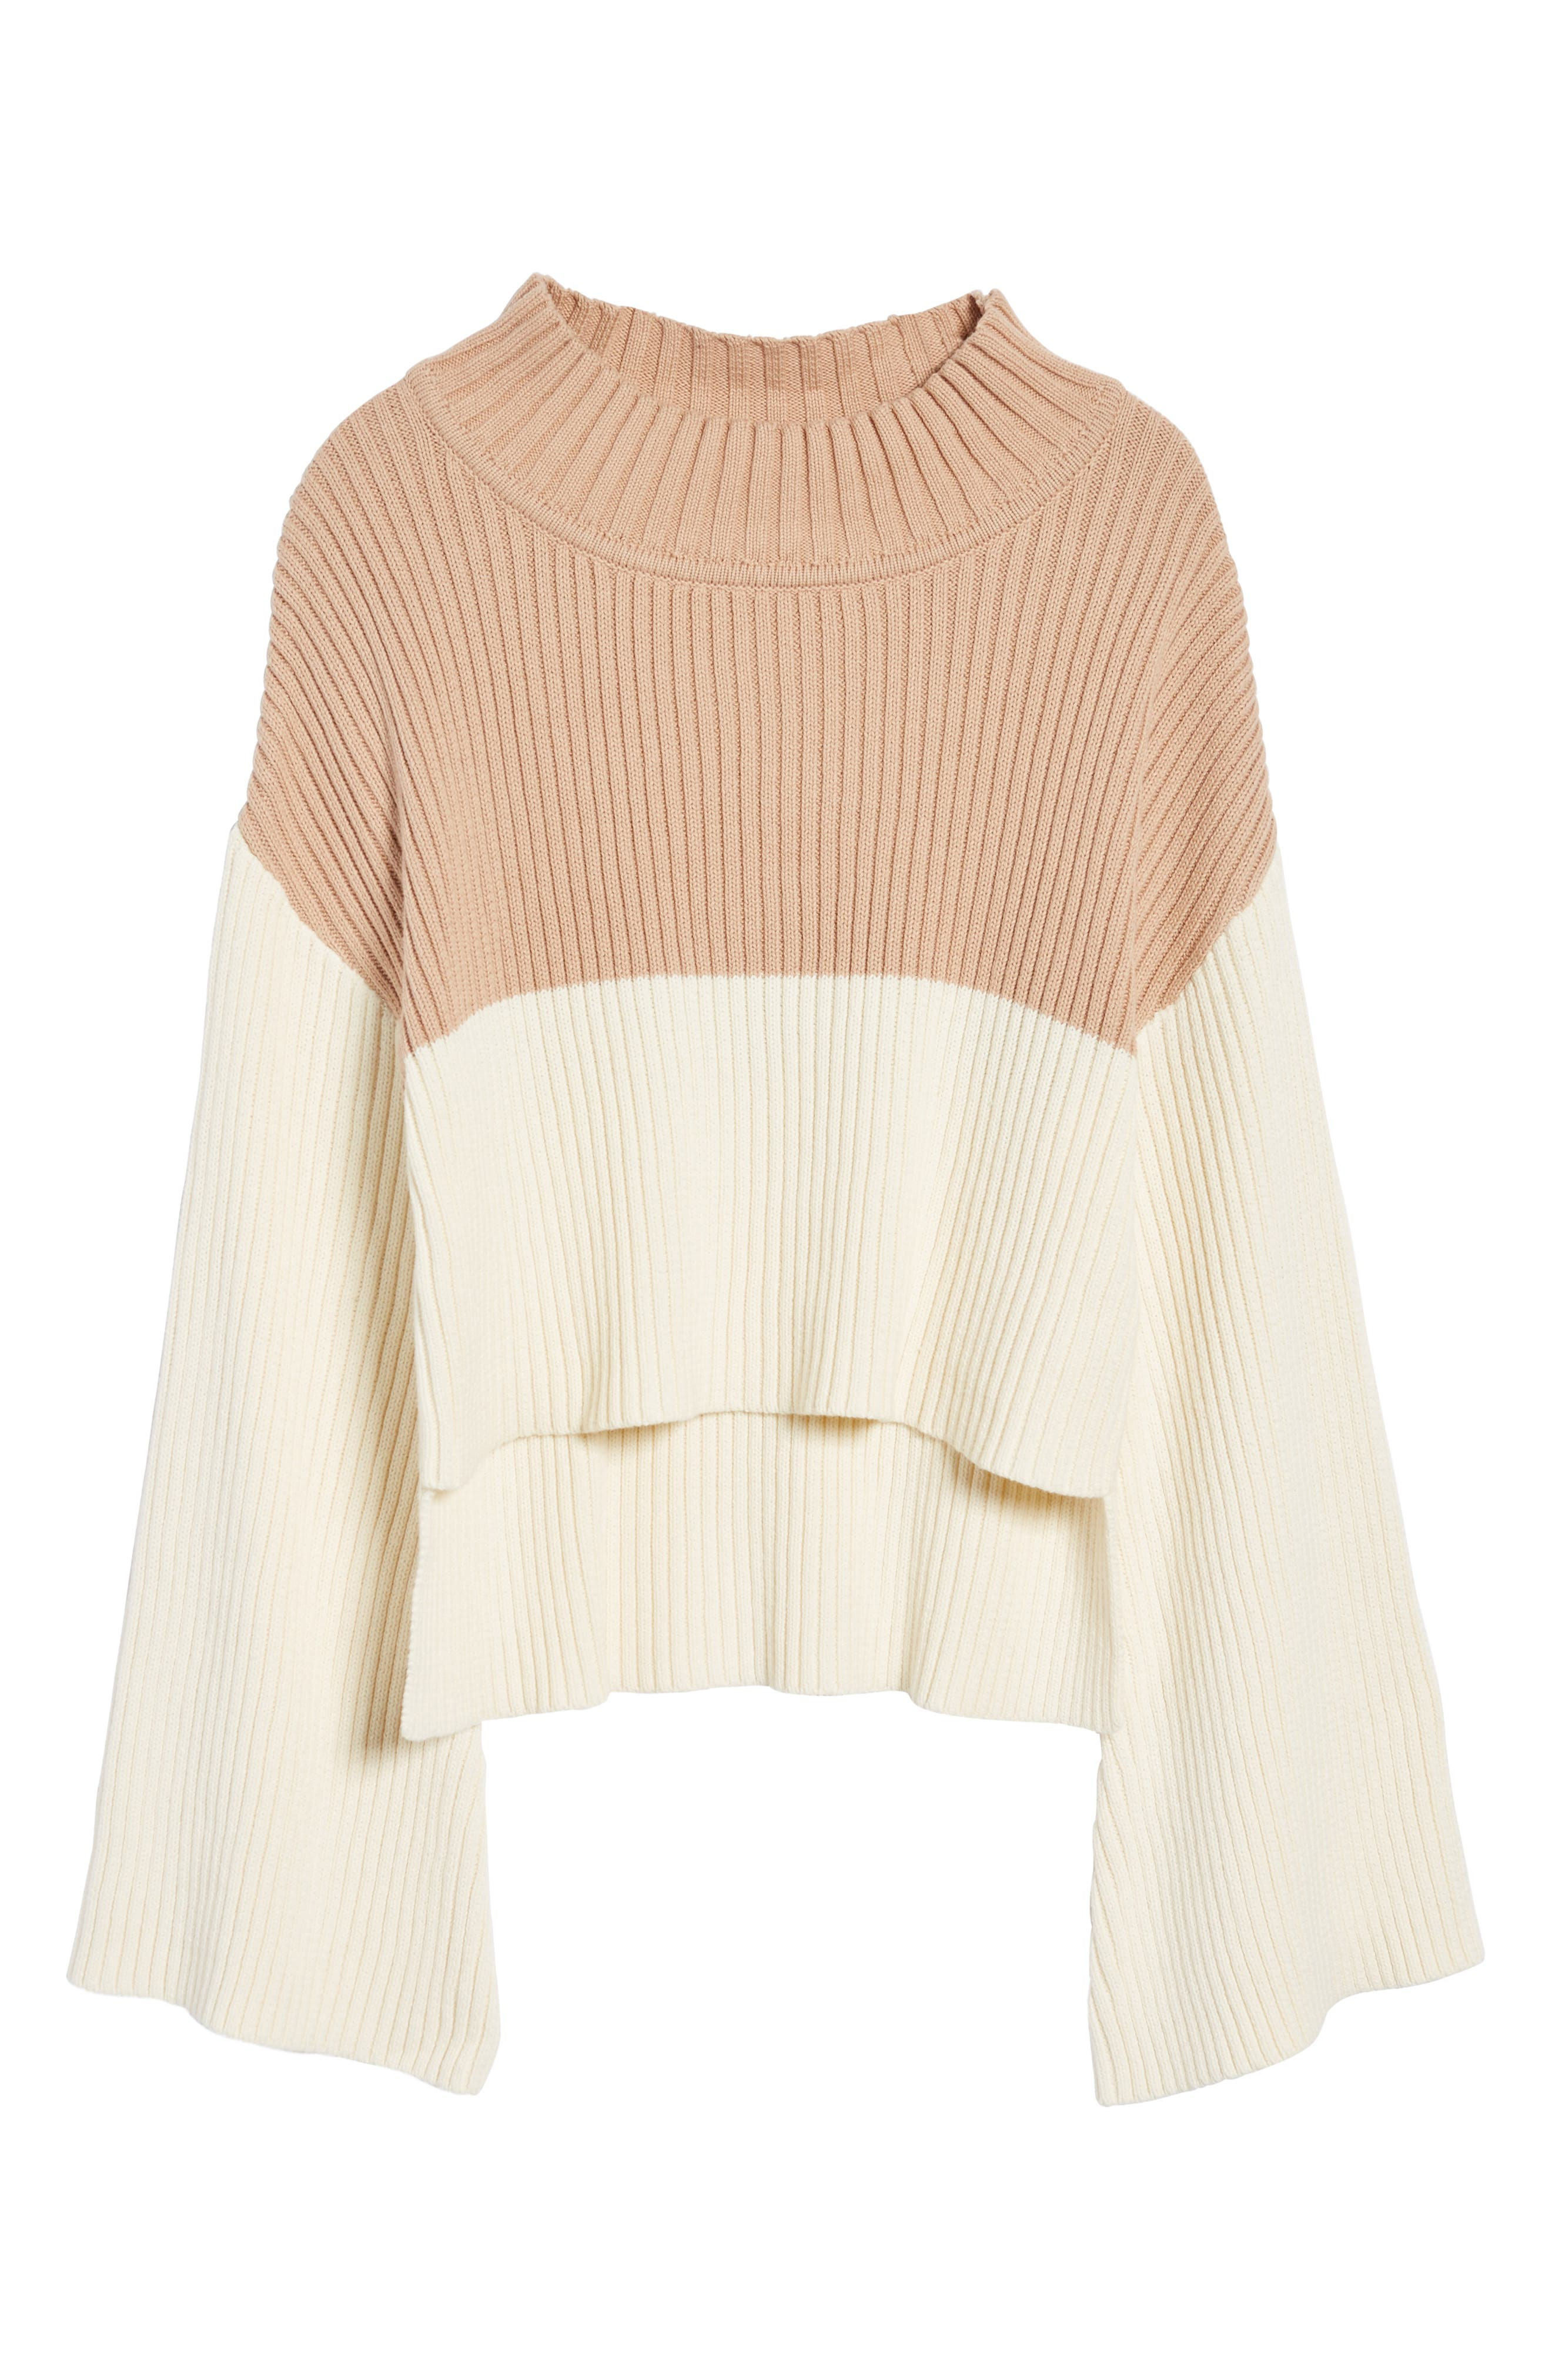 Like a Melody Colorblock Crop Sweater,                             Alternate thumbnail 6, color,                             900